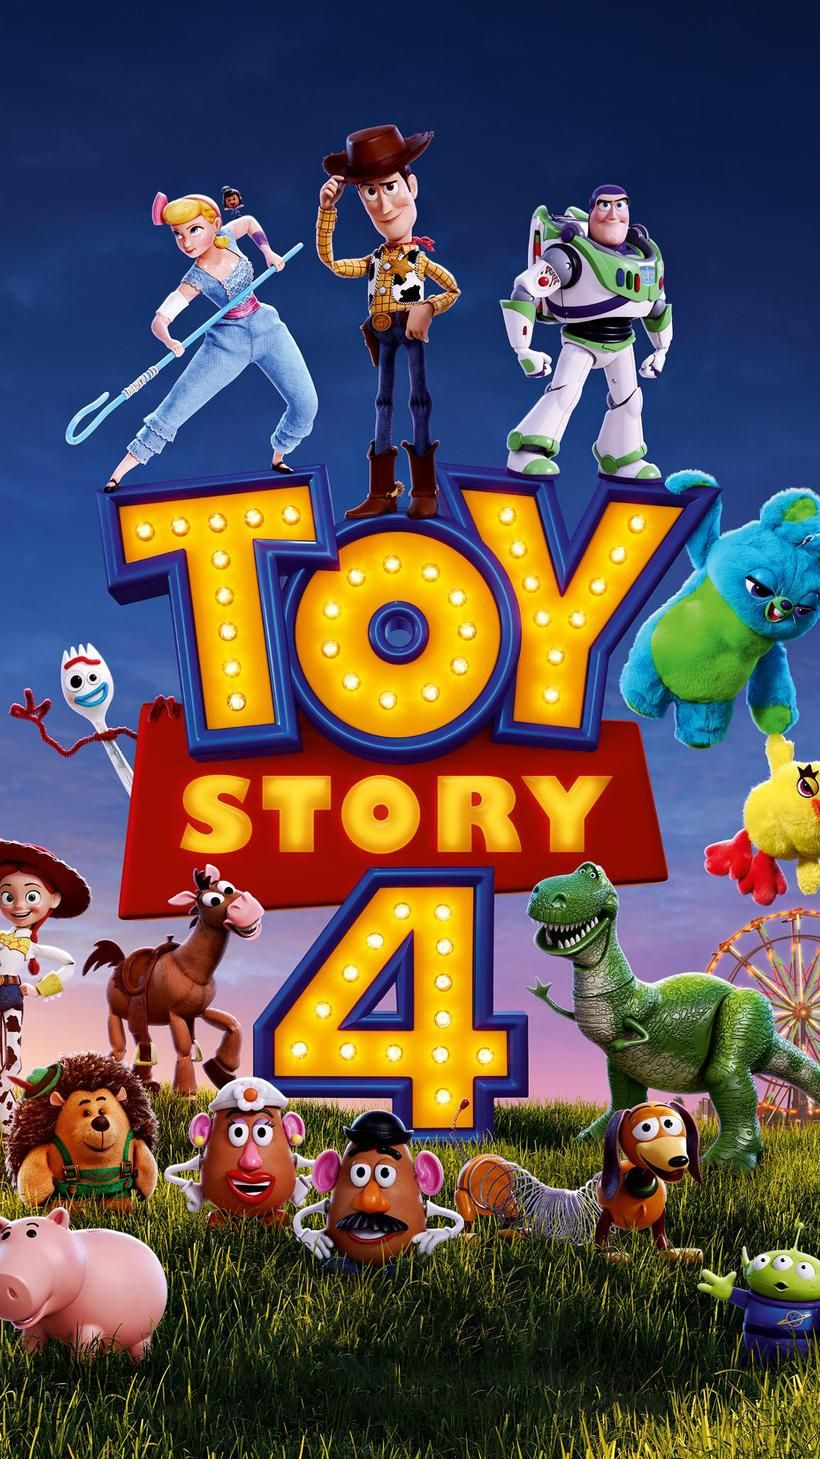 Toy Story 4 (2019) Phone Wallpaper Disney movie posters